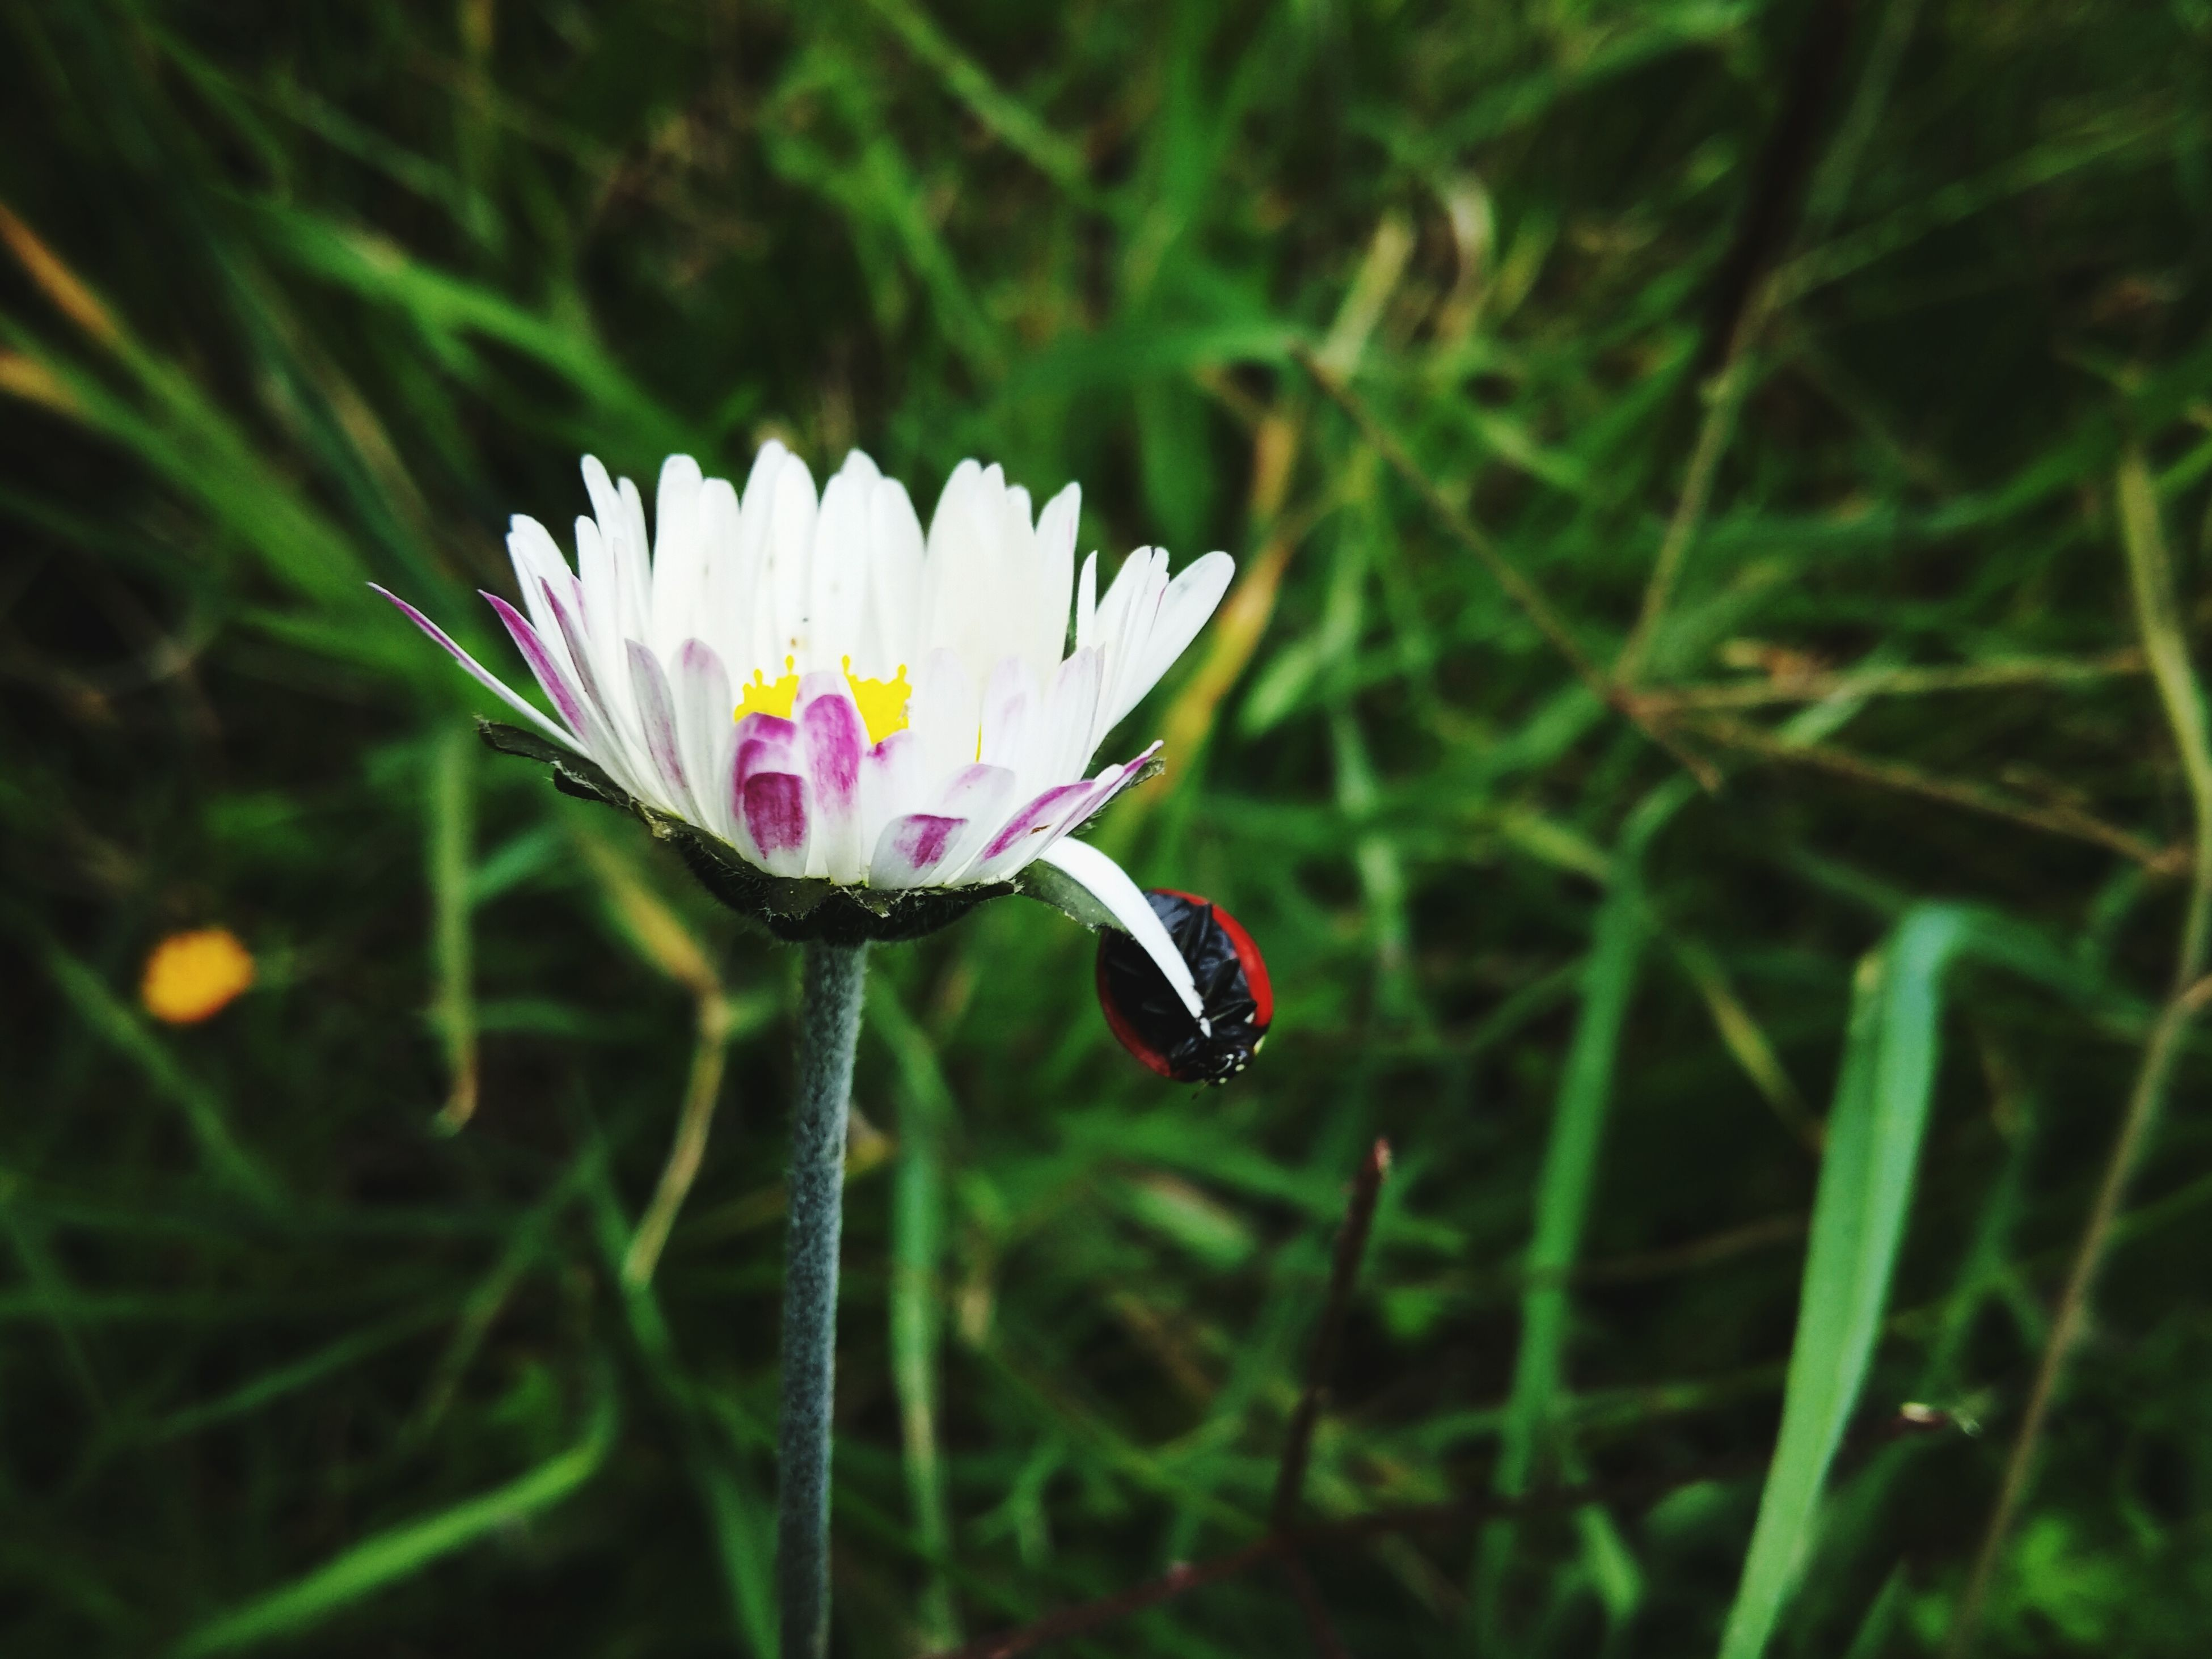 flower, fragility, growth, beauty in nature, nature, freshness, petal, flower head, plant, blooming, focus on foreground, green color, close-up, day, outdoors, pollen, no people